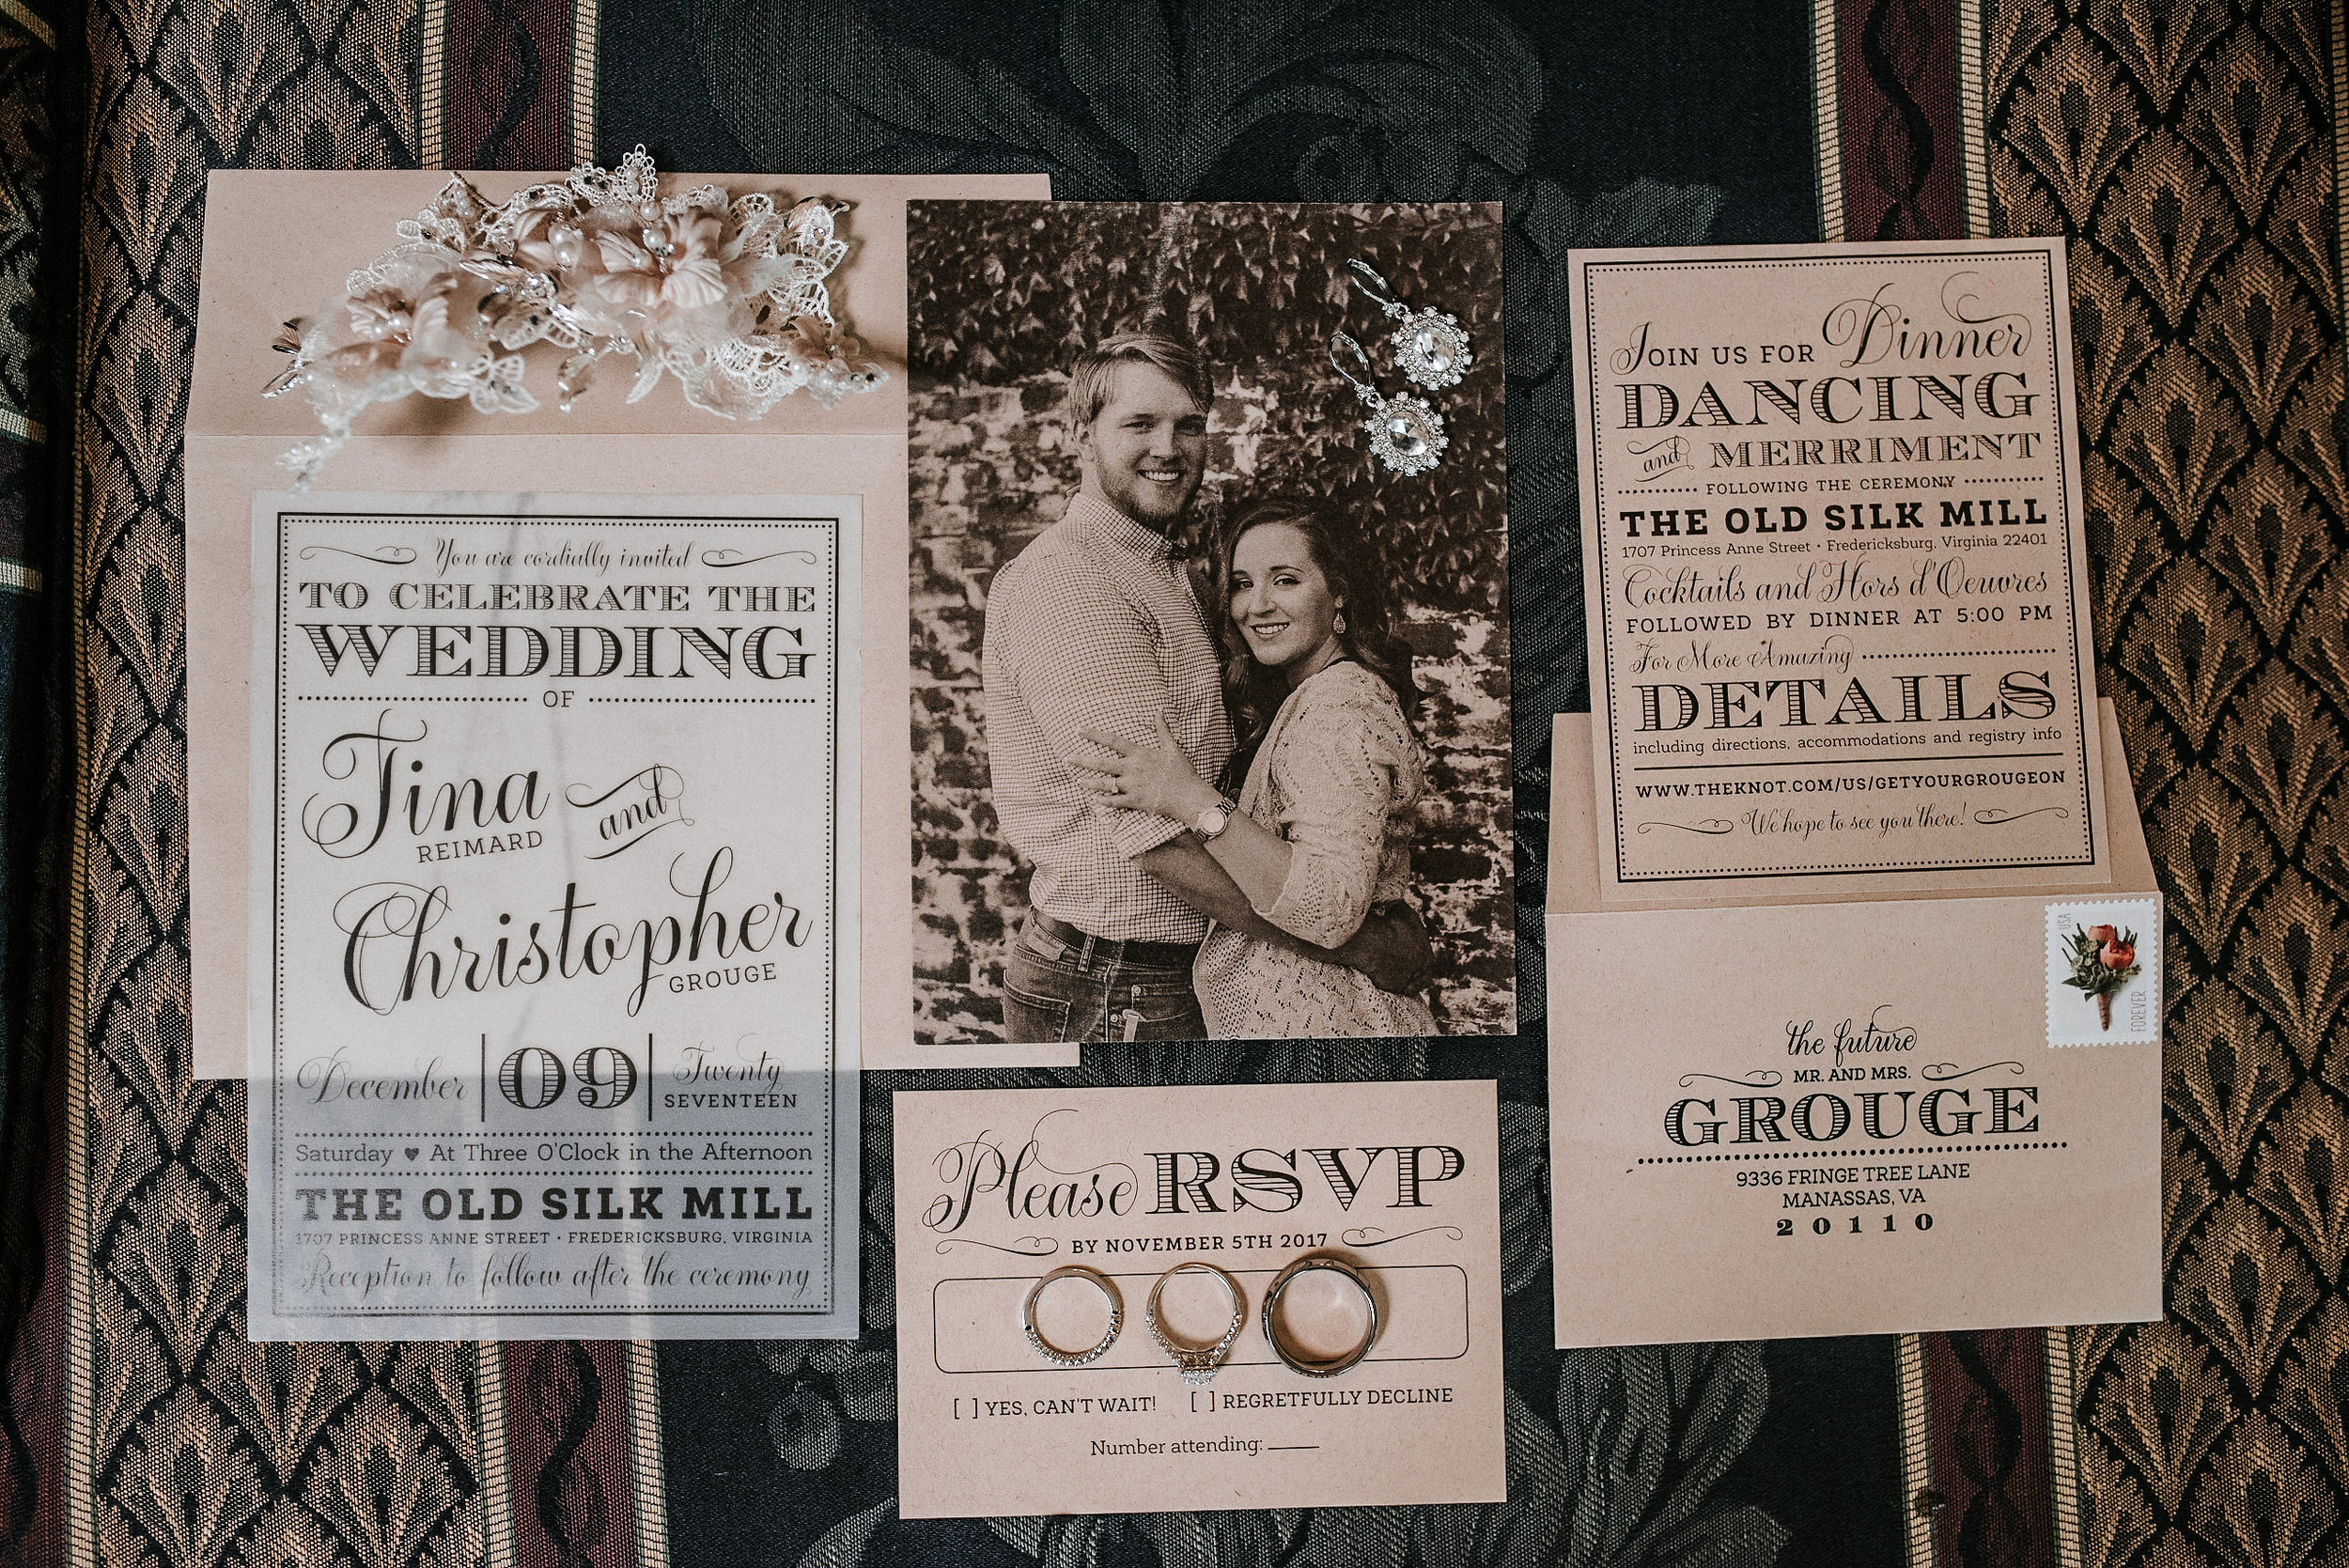 Wedding invitation and rings